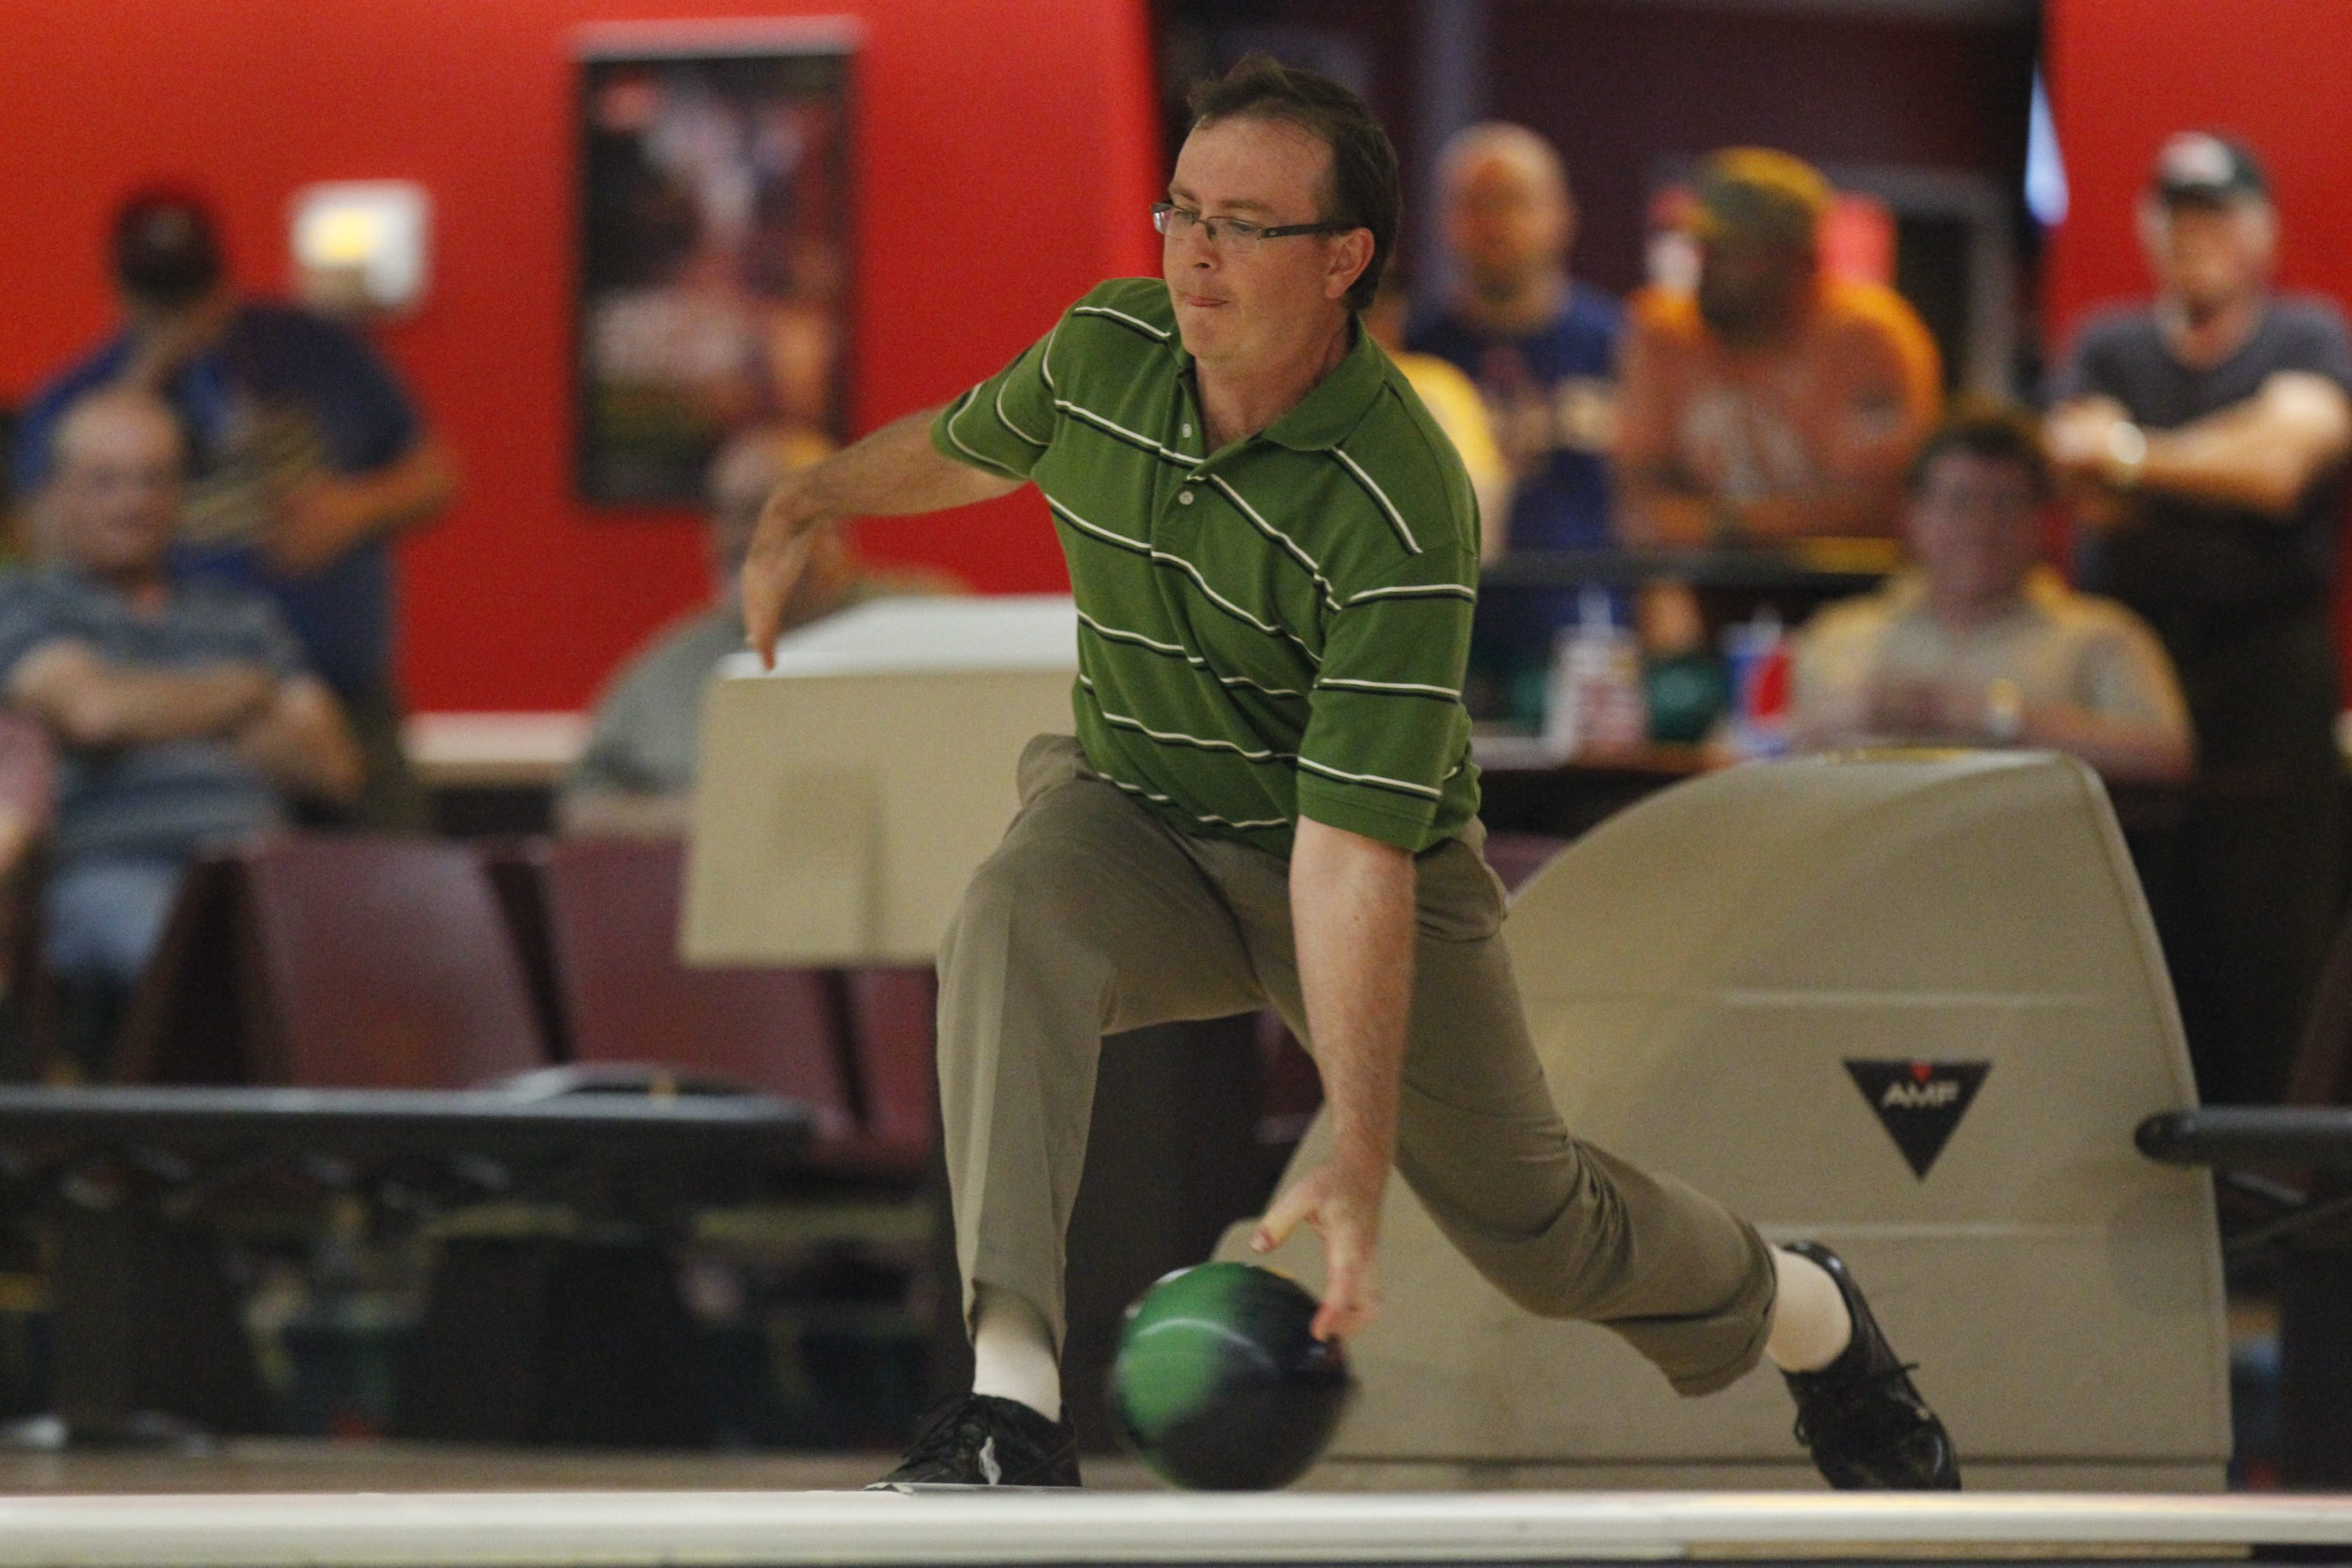 Tony Dolan of West Seneca had a big year in 2015, winning the George A. Obenauer Masters in a dramatic finish, as well as shooting an 869 series in a league match at Broadway. (Harry Scull Jr./Buffalo News)